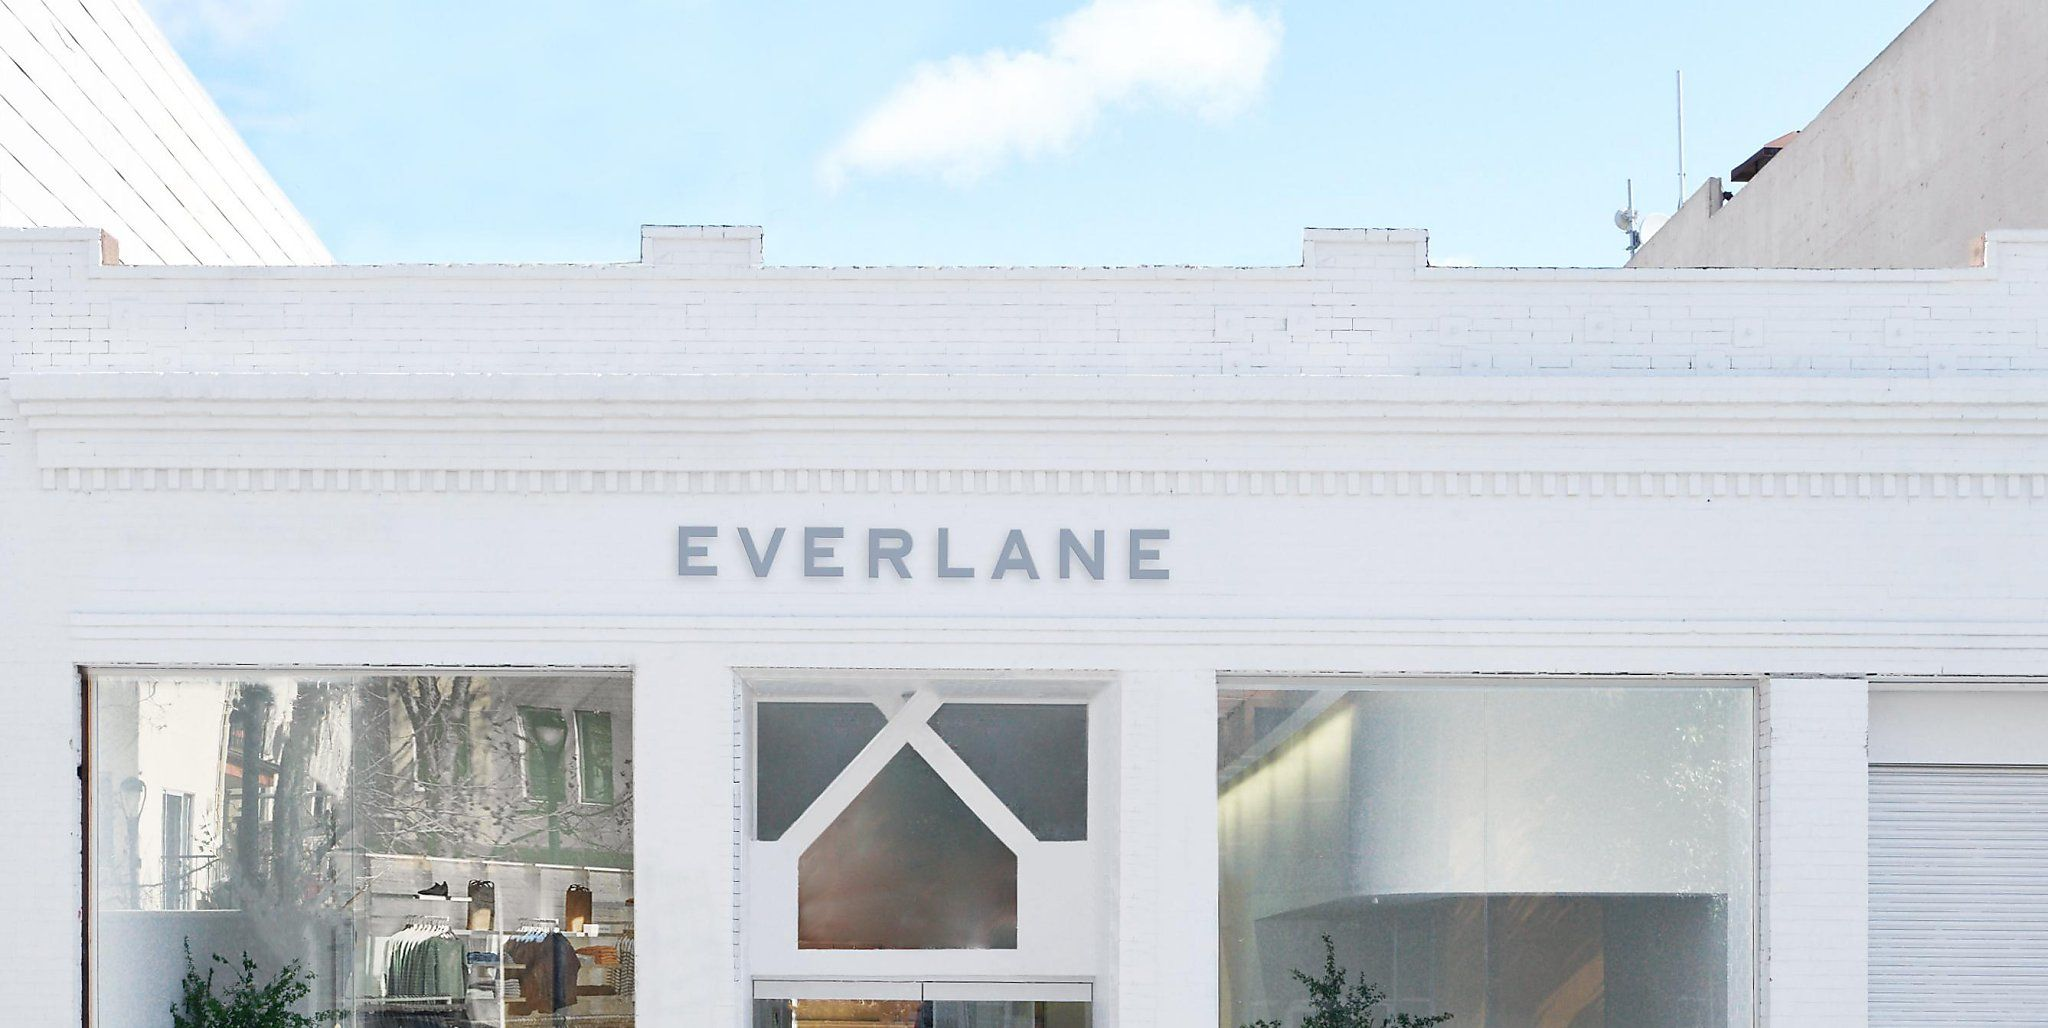 Nike, Reformation, and Everlane Are The Latest Brands to Shut Down All Retail Locations In Response to COVID-19